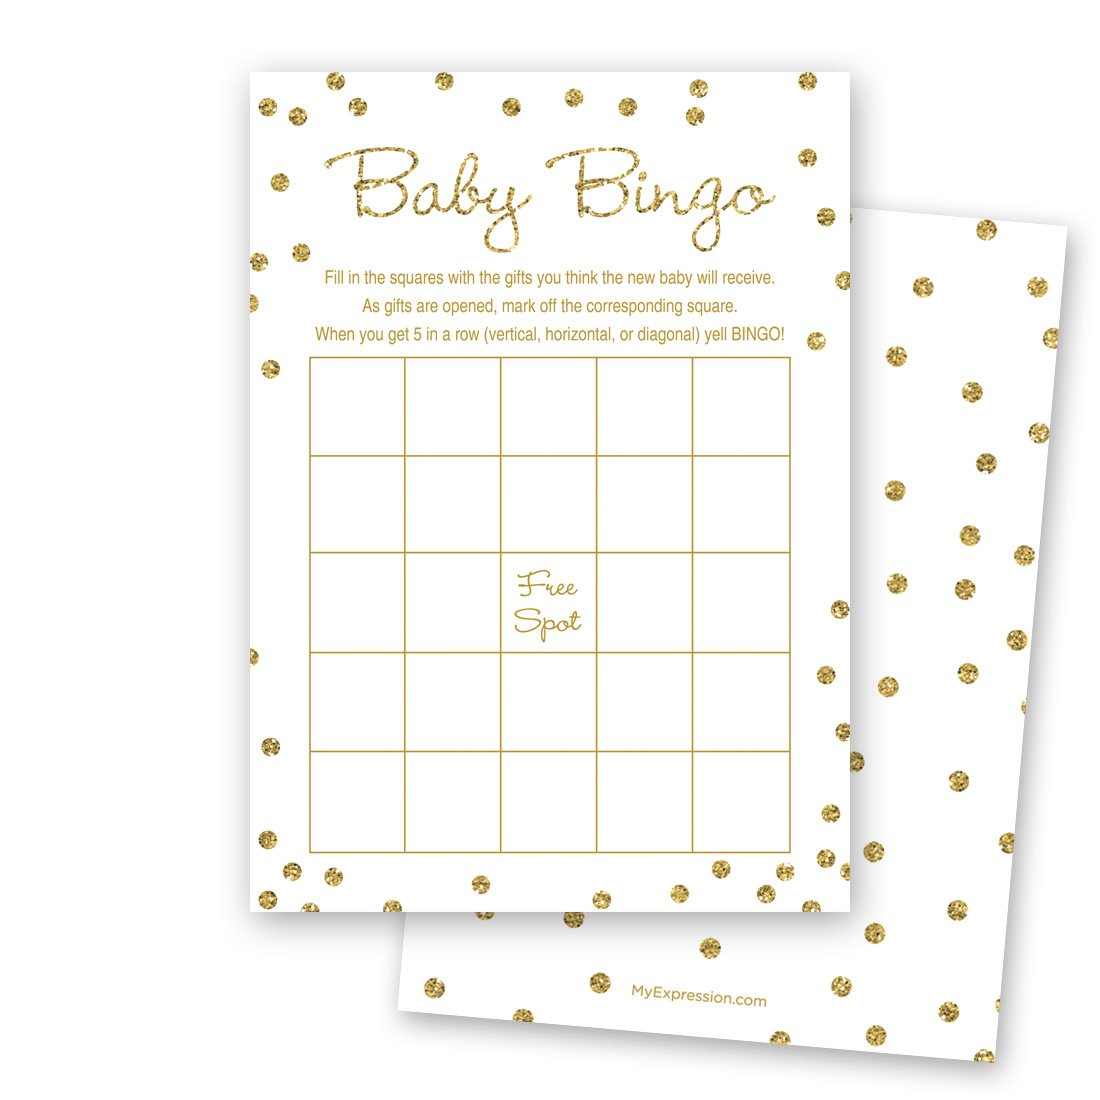 MyExpression.com 24 Cnt Gold Glitter Graphic Dots Baby Bingo Cards by MyExpression.com